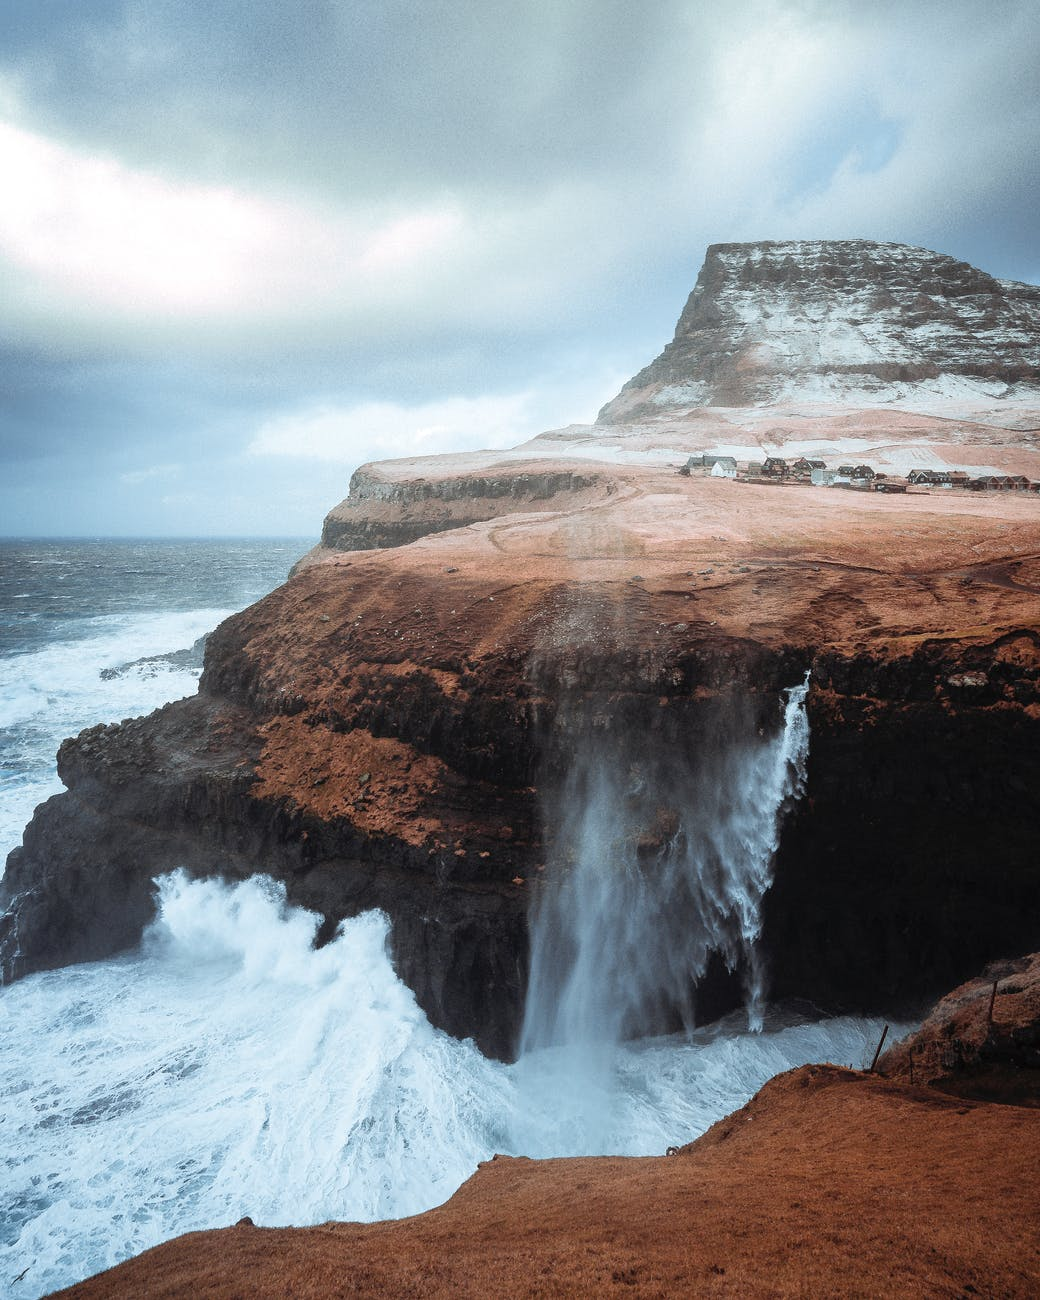 stormy sea with rocky cliffs in daylight